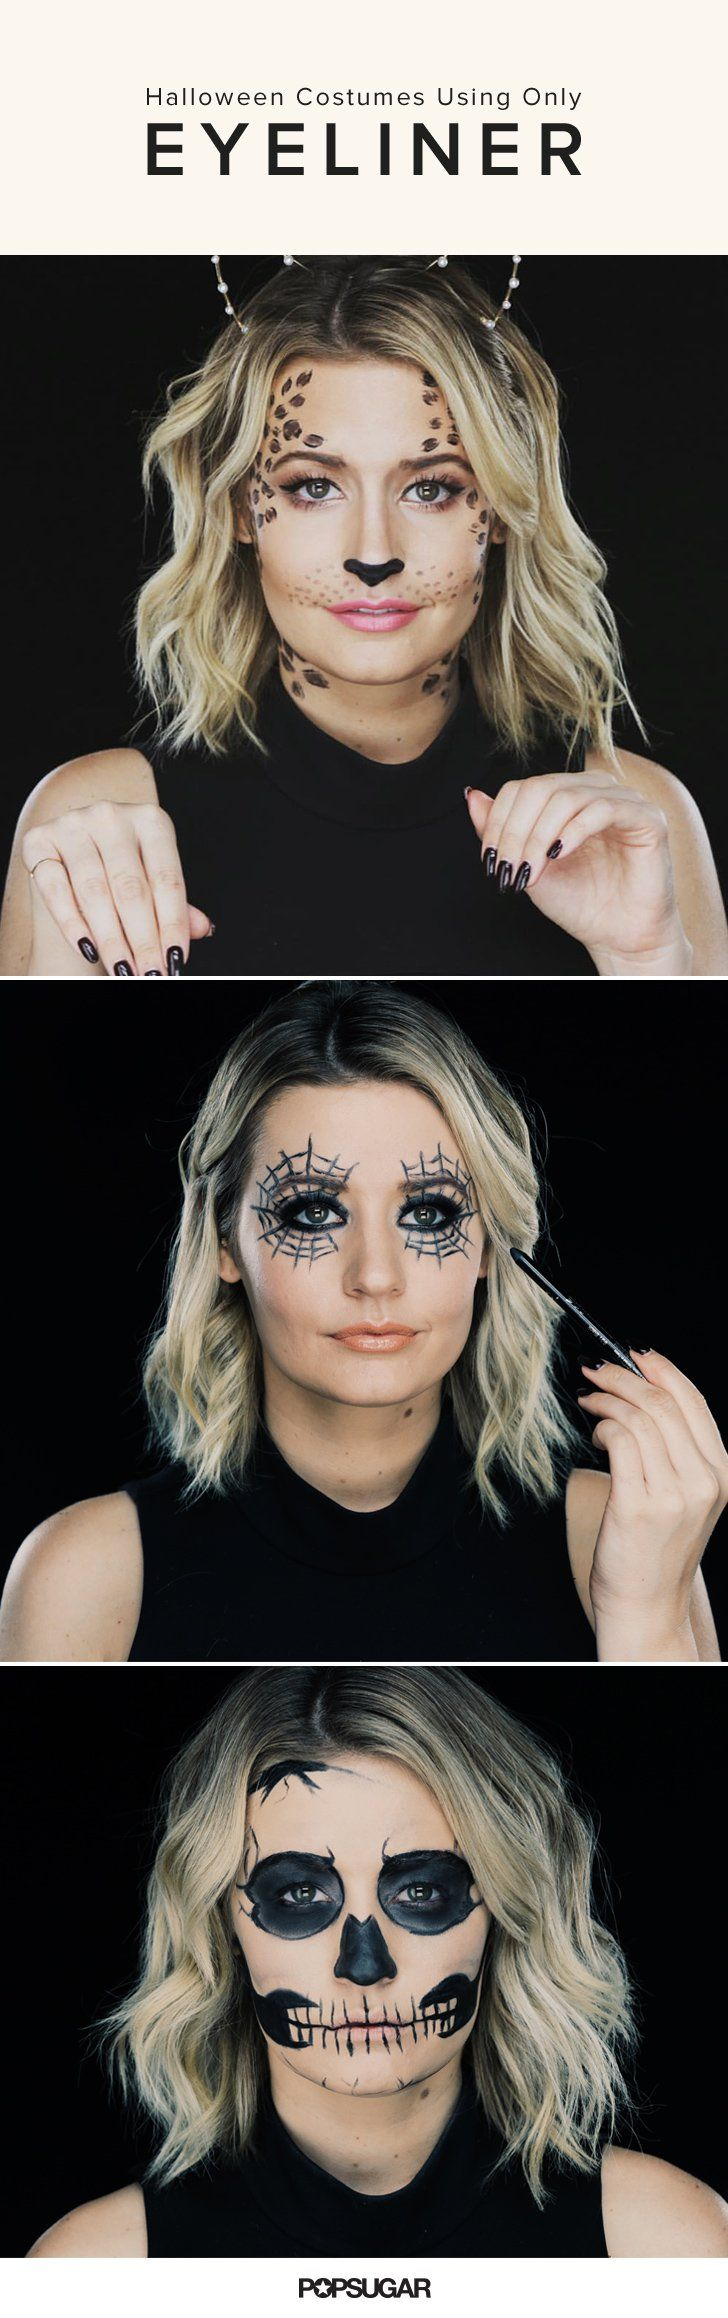 3 Halloween Costumes Using Only Eyeliner